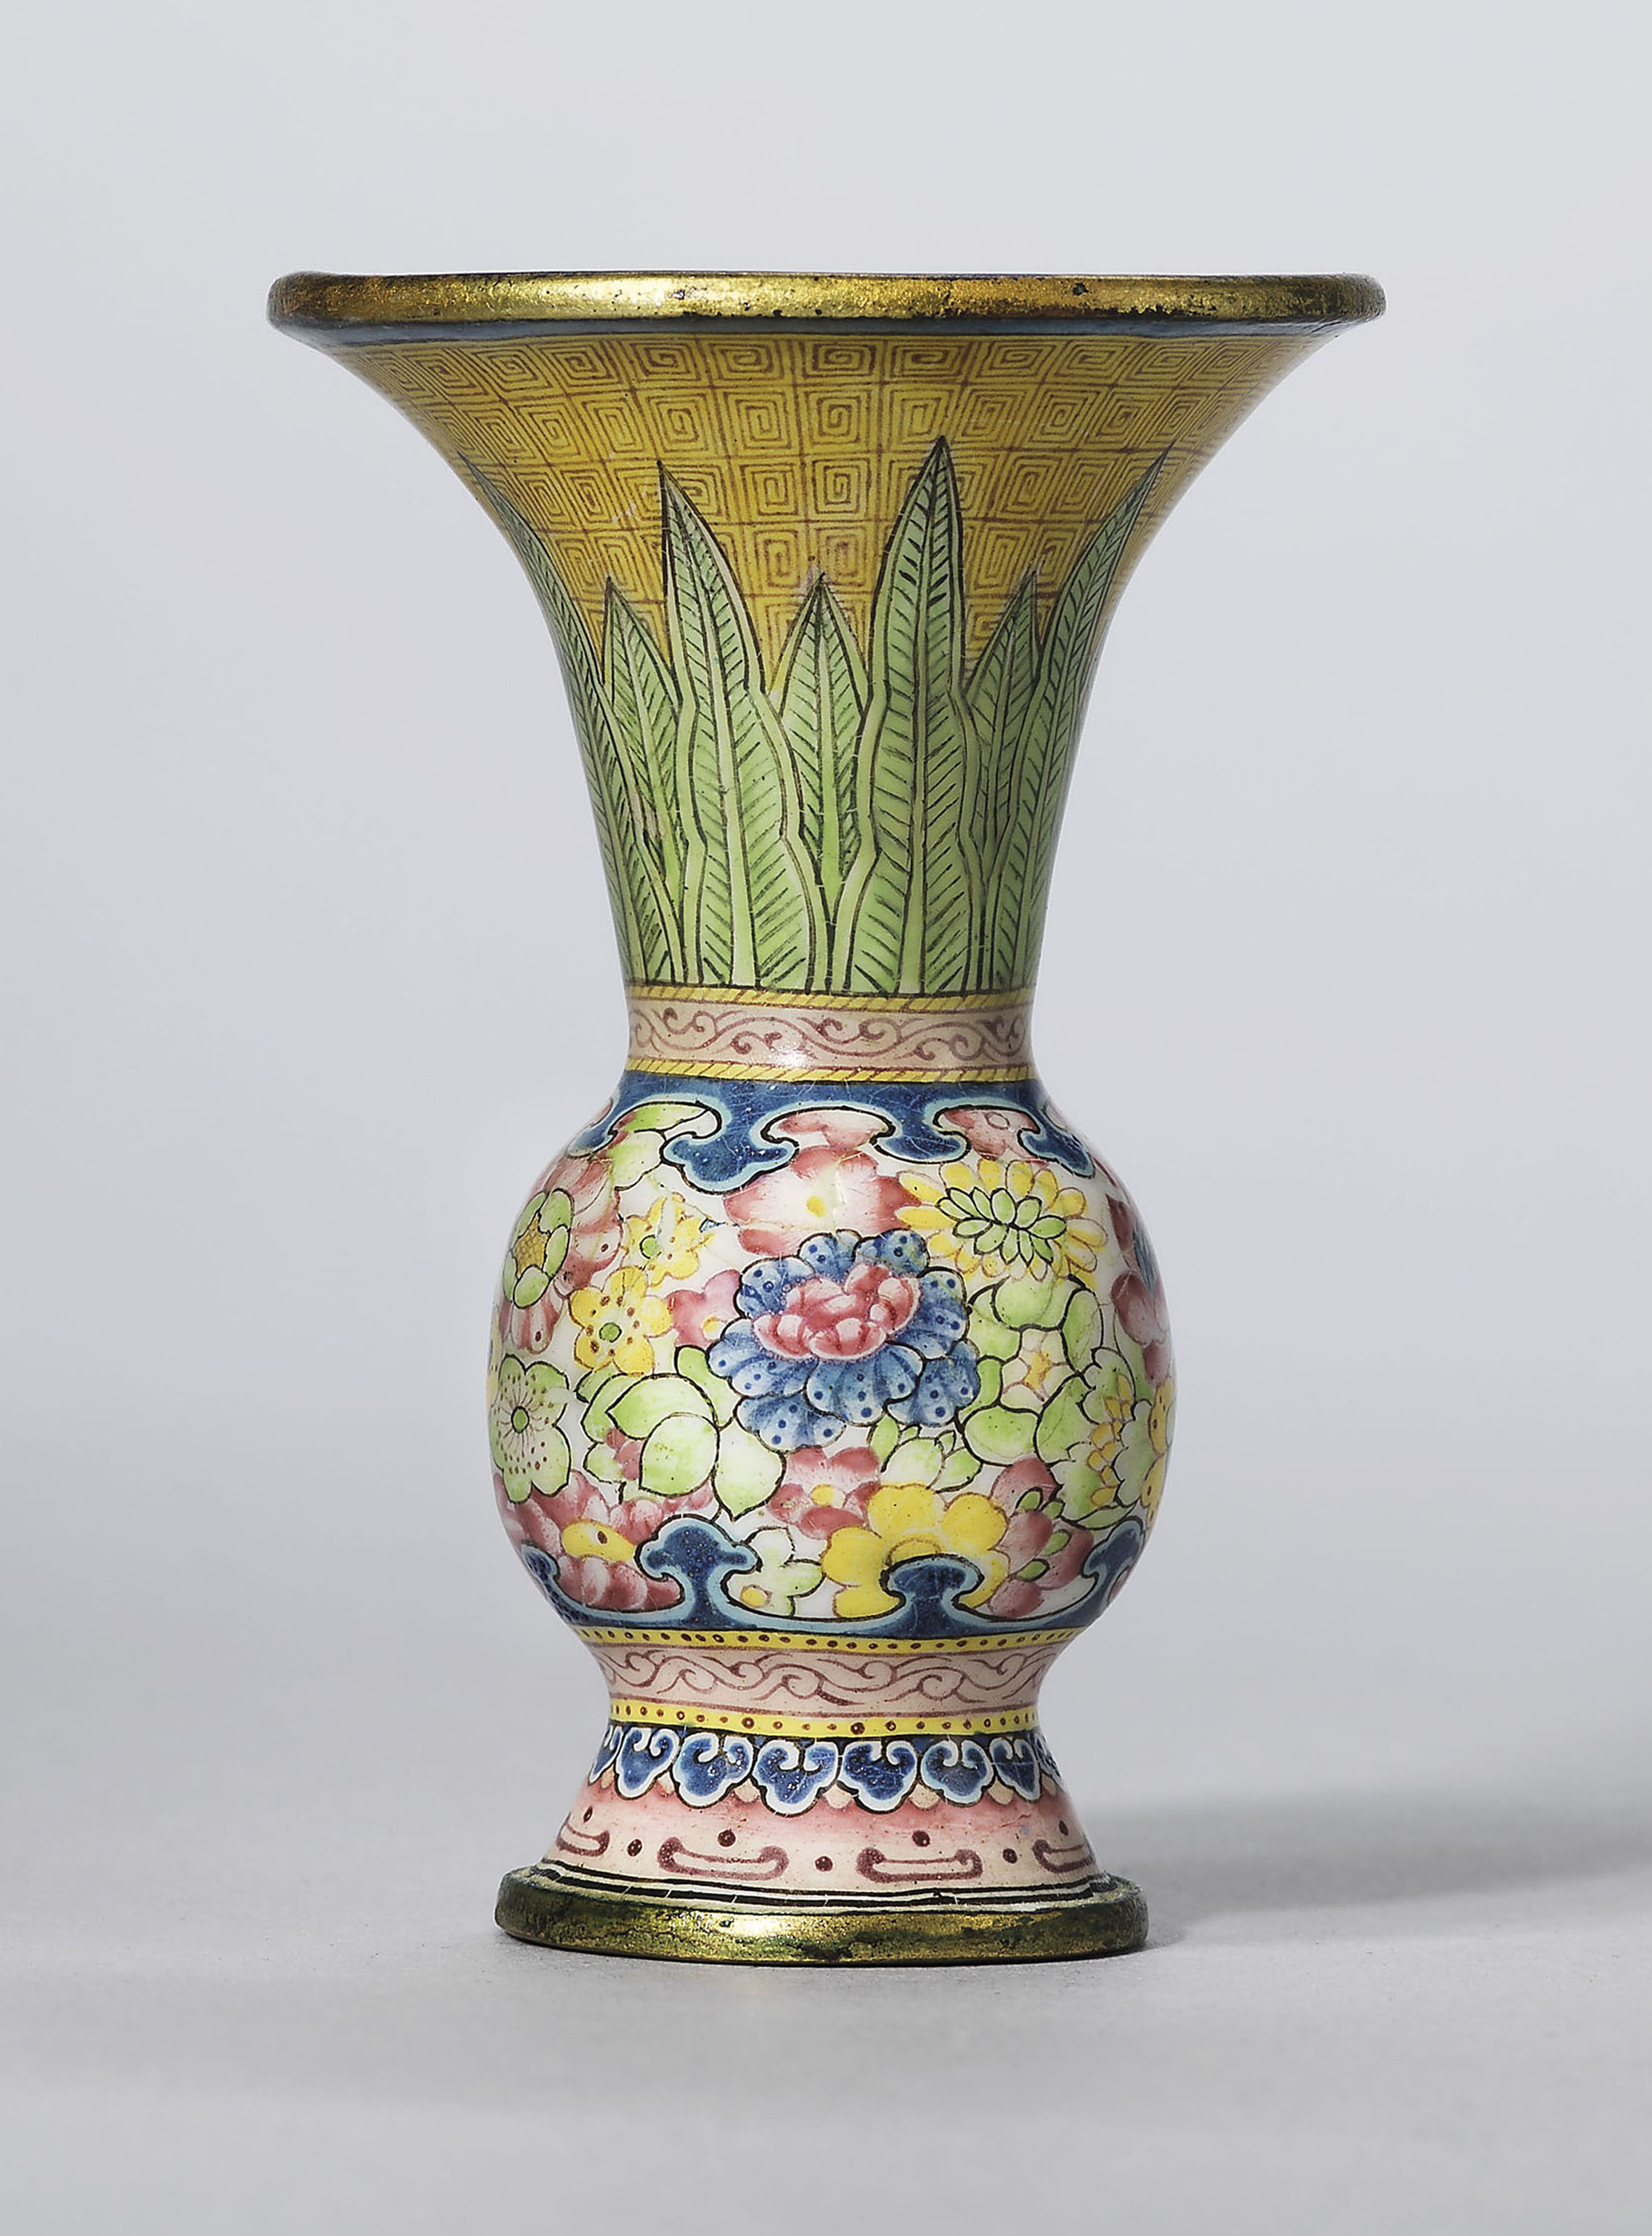 large white vases for sale of a guide to the symbolism of flowers on chinese ceramics christies within a rare painted enamel gu shaped miniature vase qianlong four character mark in